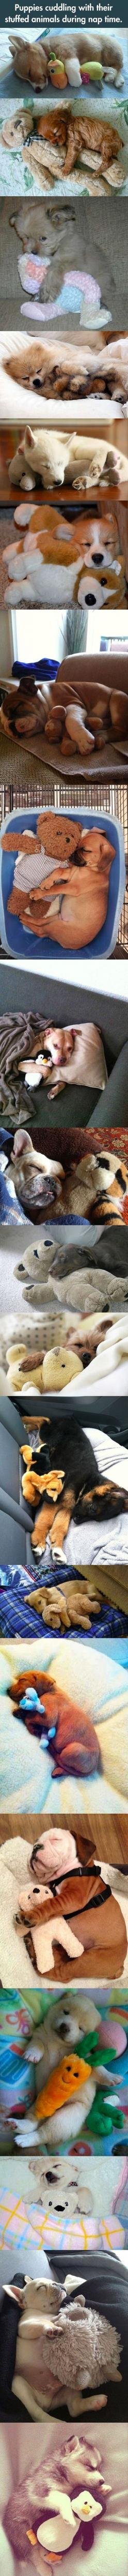 Dying: Nap Time, Stuffed Animals, Cuteness Overload, Pet, Puppys, Stuffed Toy, Dog, Puppies Cuddling